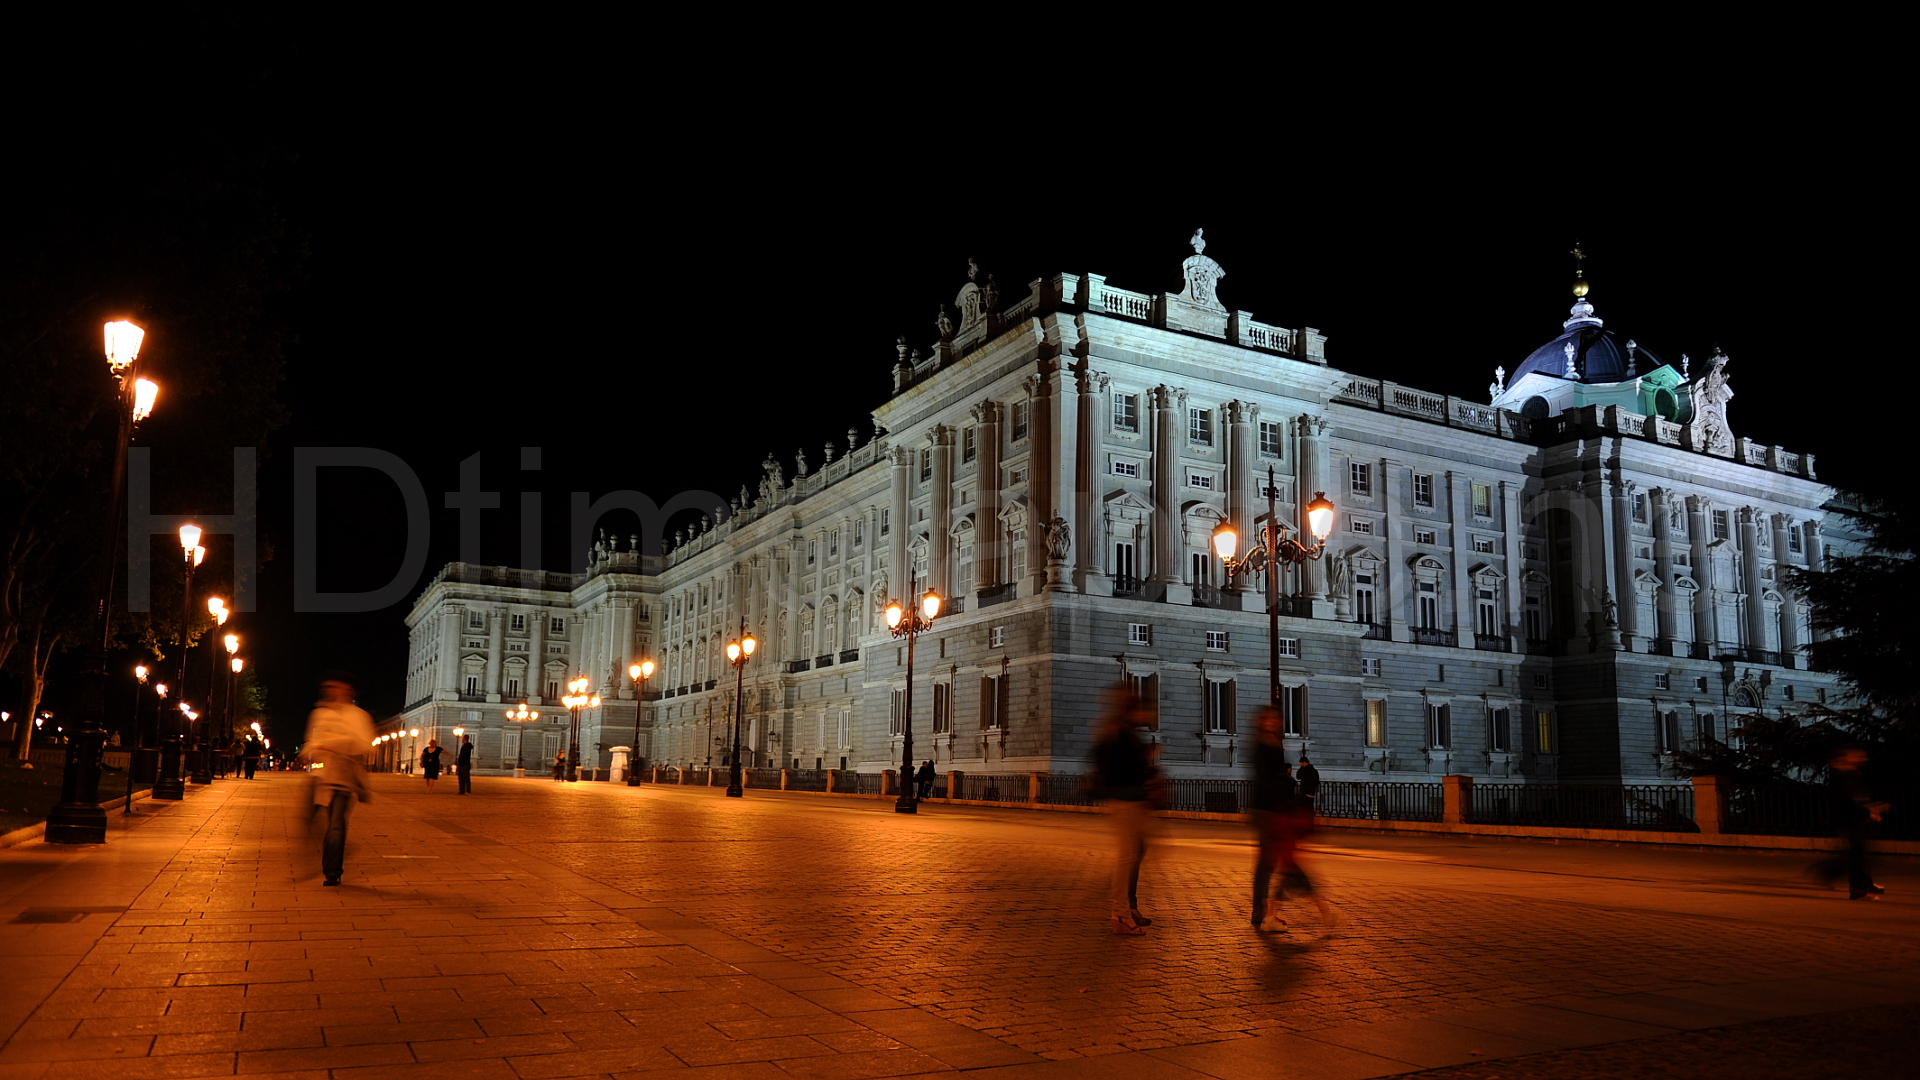 Exterior View Of The Royal Palace Of Madrid Lit Up At Nighty